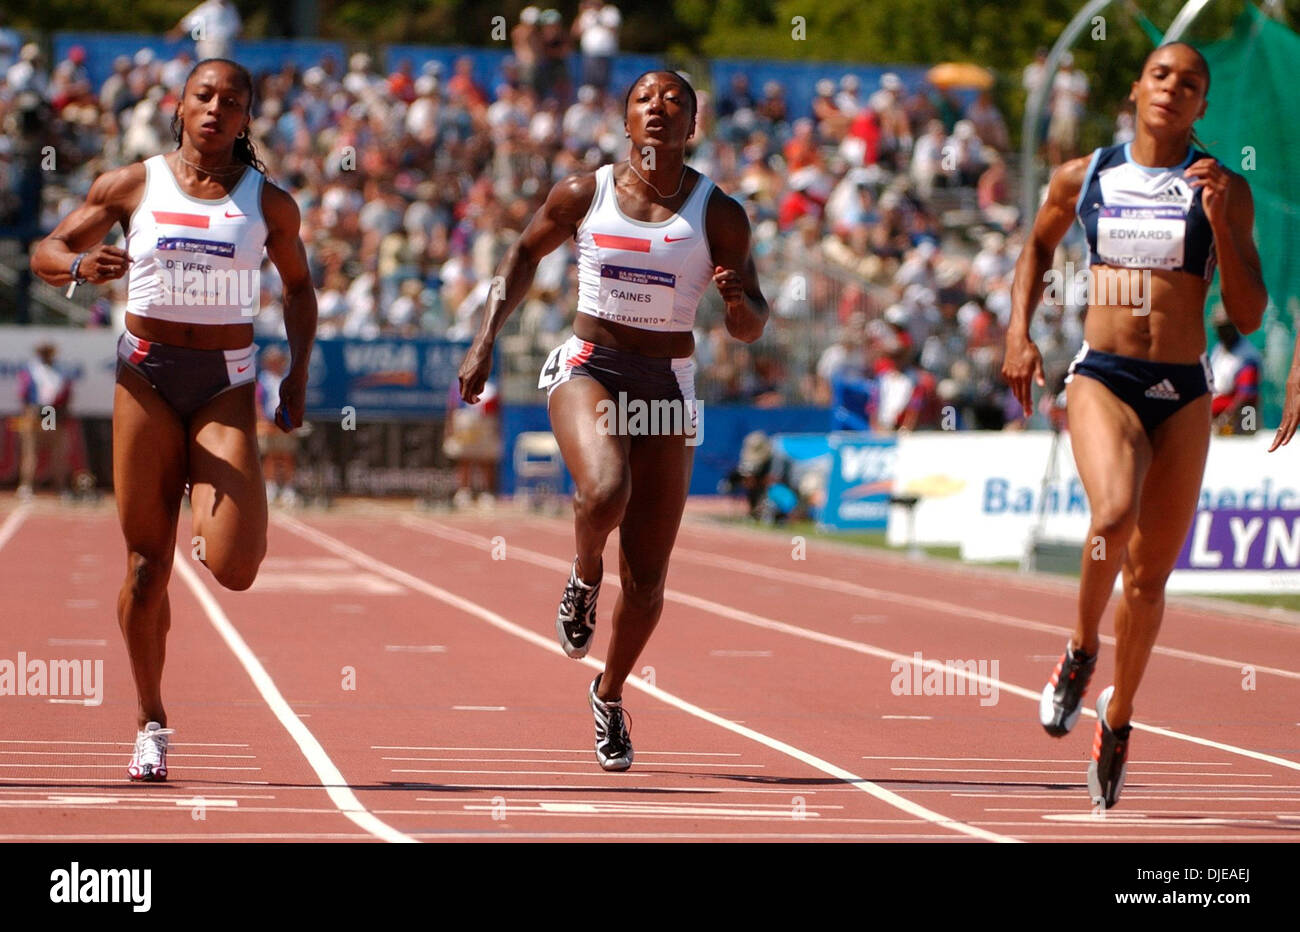 Jul 09, 2004; Sacramento, CA, USA; GAIL DEVERS, CHRYSTE GAINES and TORRI EDWARDS finsih in heat one of the Womes 100 meters on day two of the 2004 U.S. Track and Field Trials at Hornet Stadium. - Stock Image